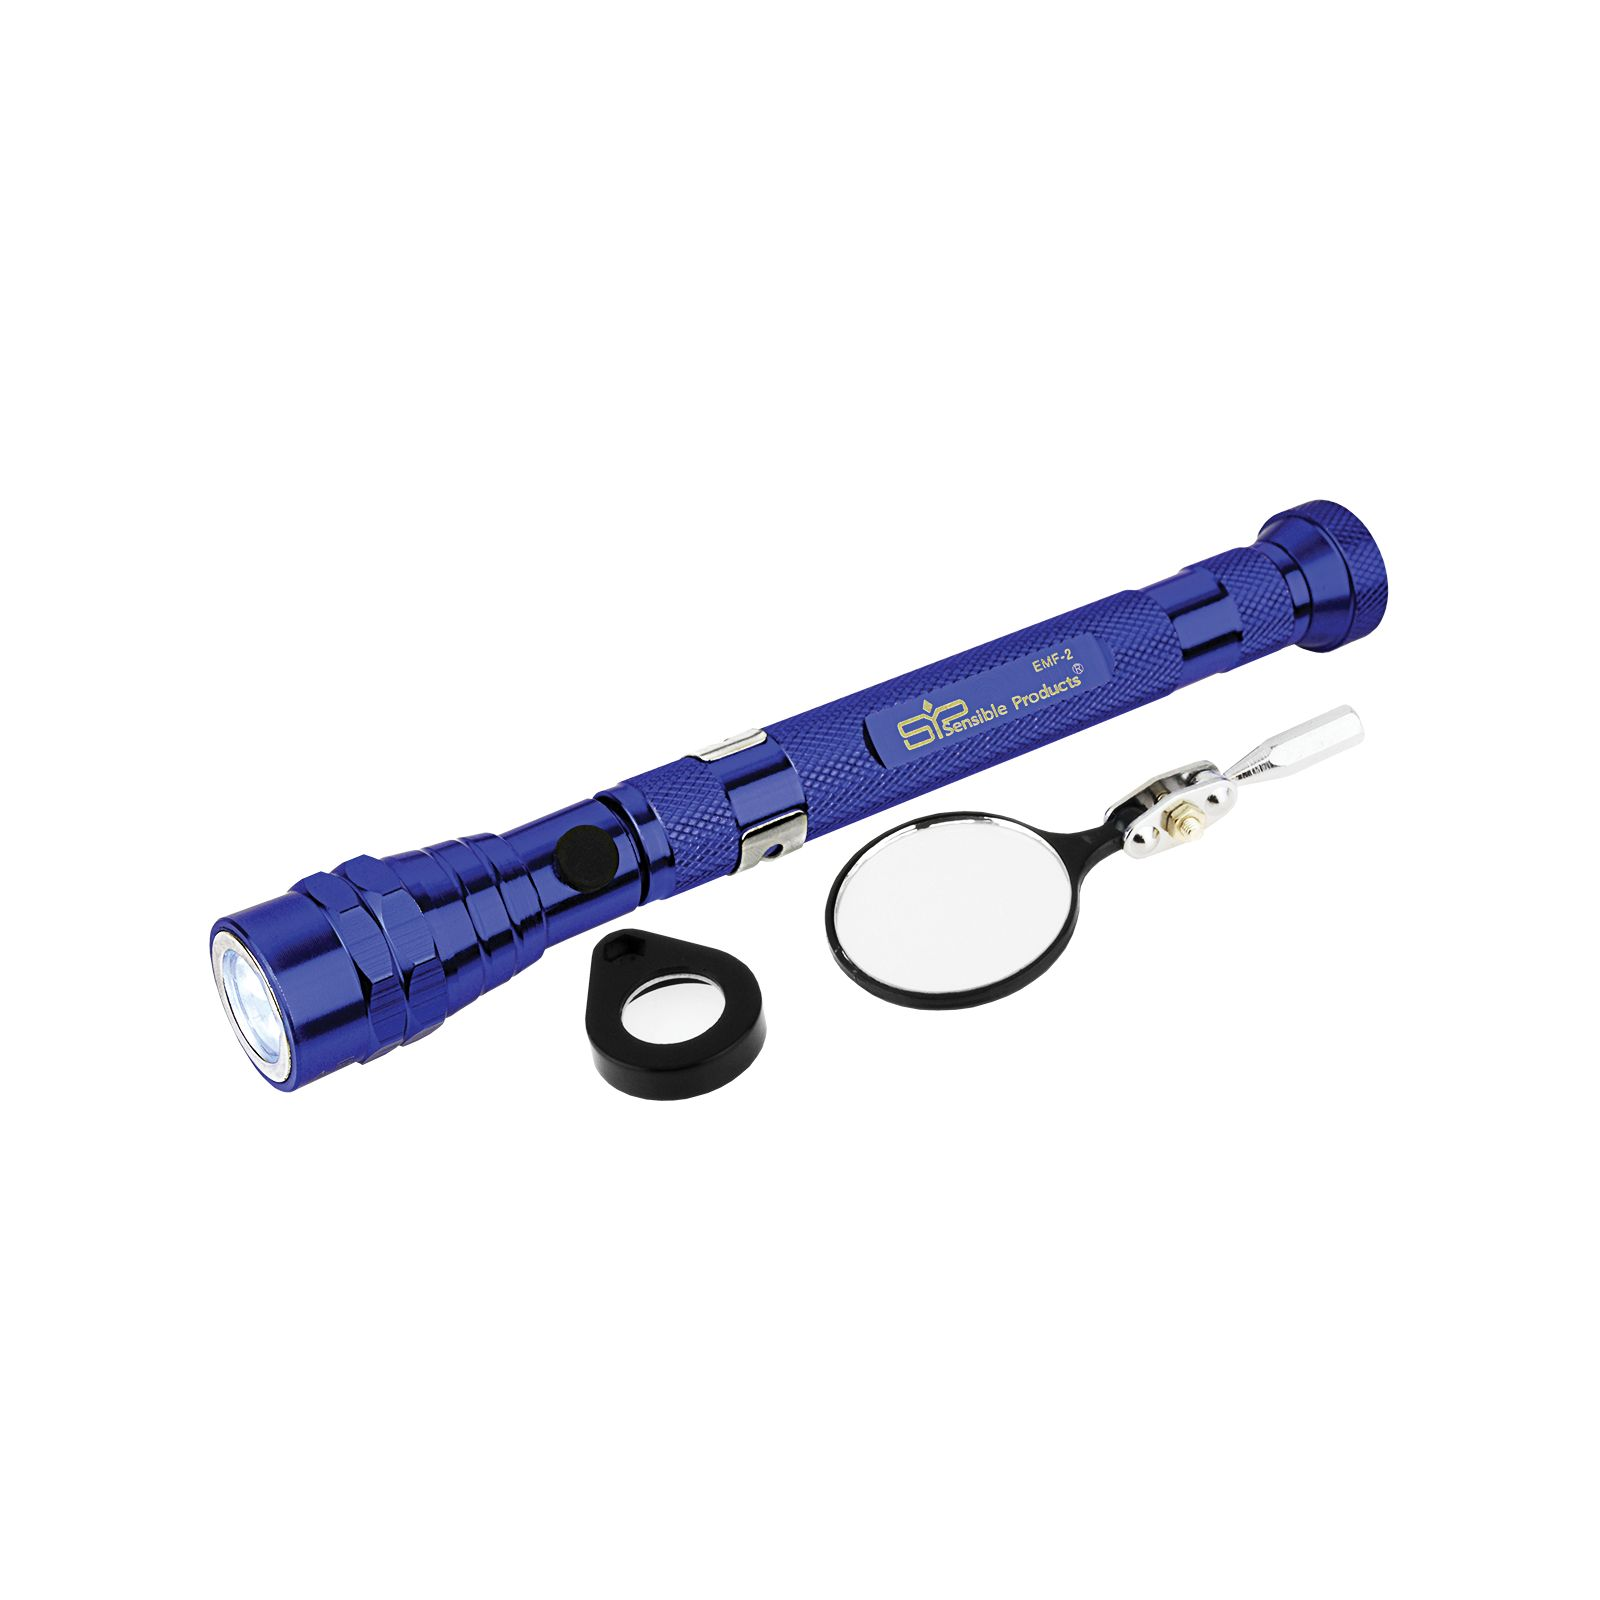 Sensible EMF-2 - Extendable Magnetic Flashlight (2nd Generation)